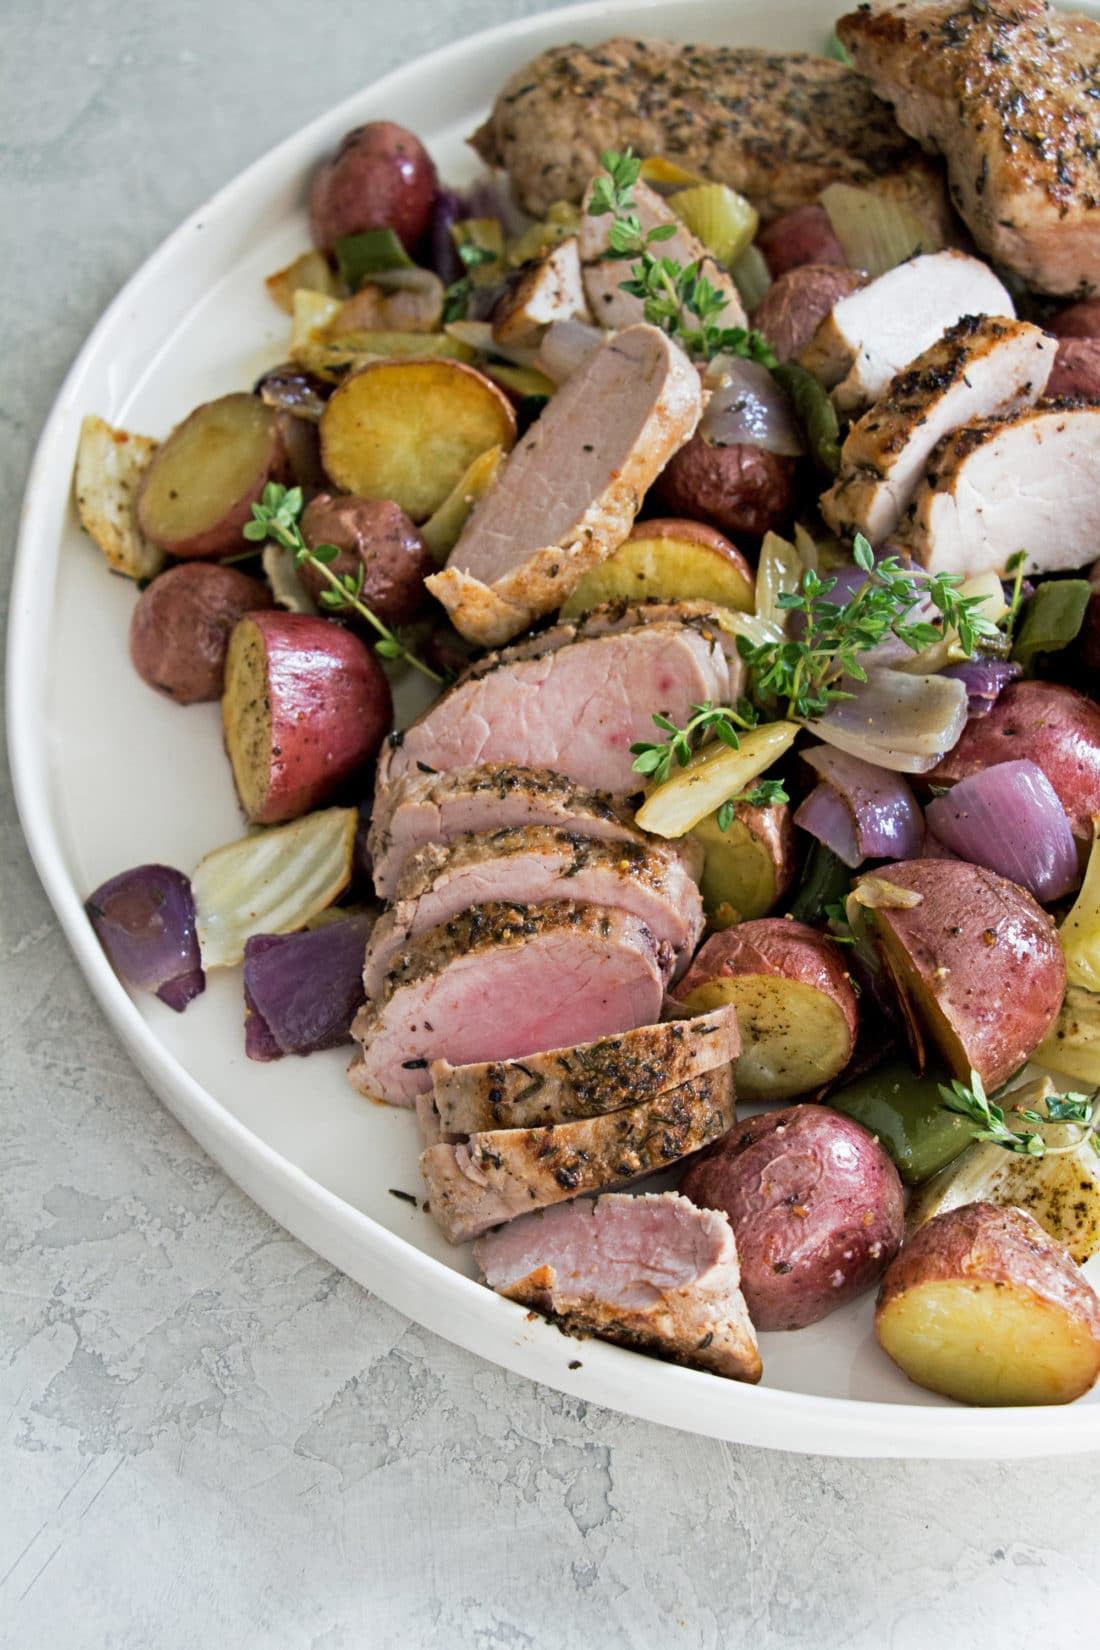 Mediterranean Pork Tenderloin with Roasted Vegetables / Photo by Mandy Maxwell / Katie Workman / themom100.com